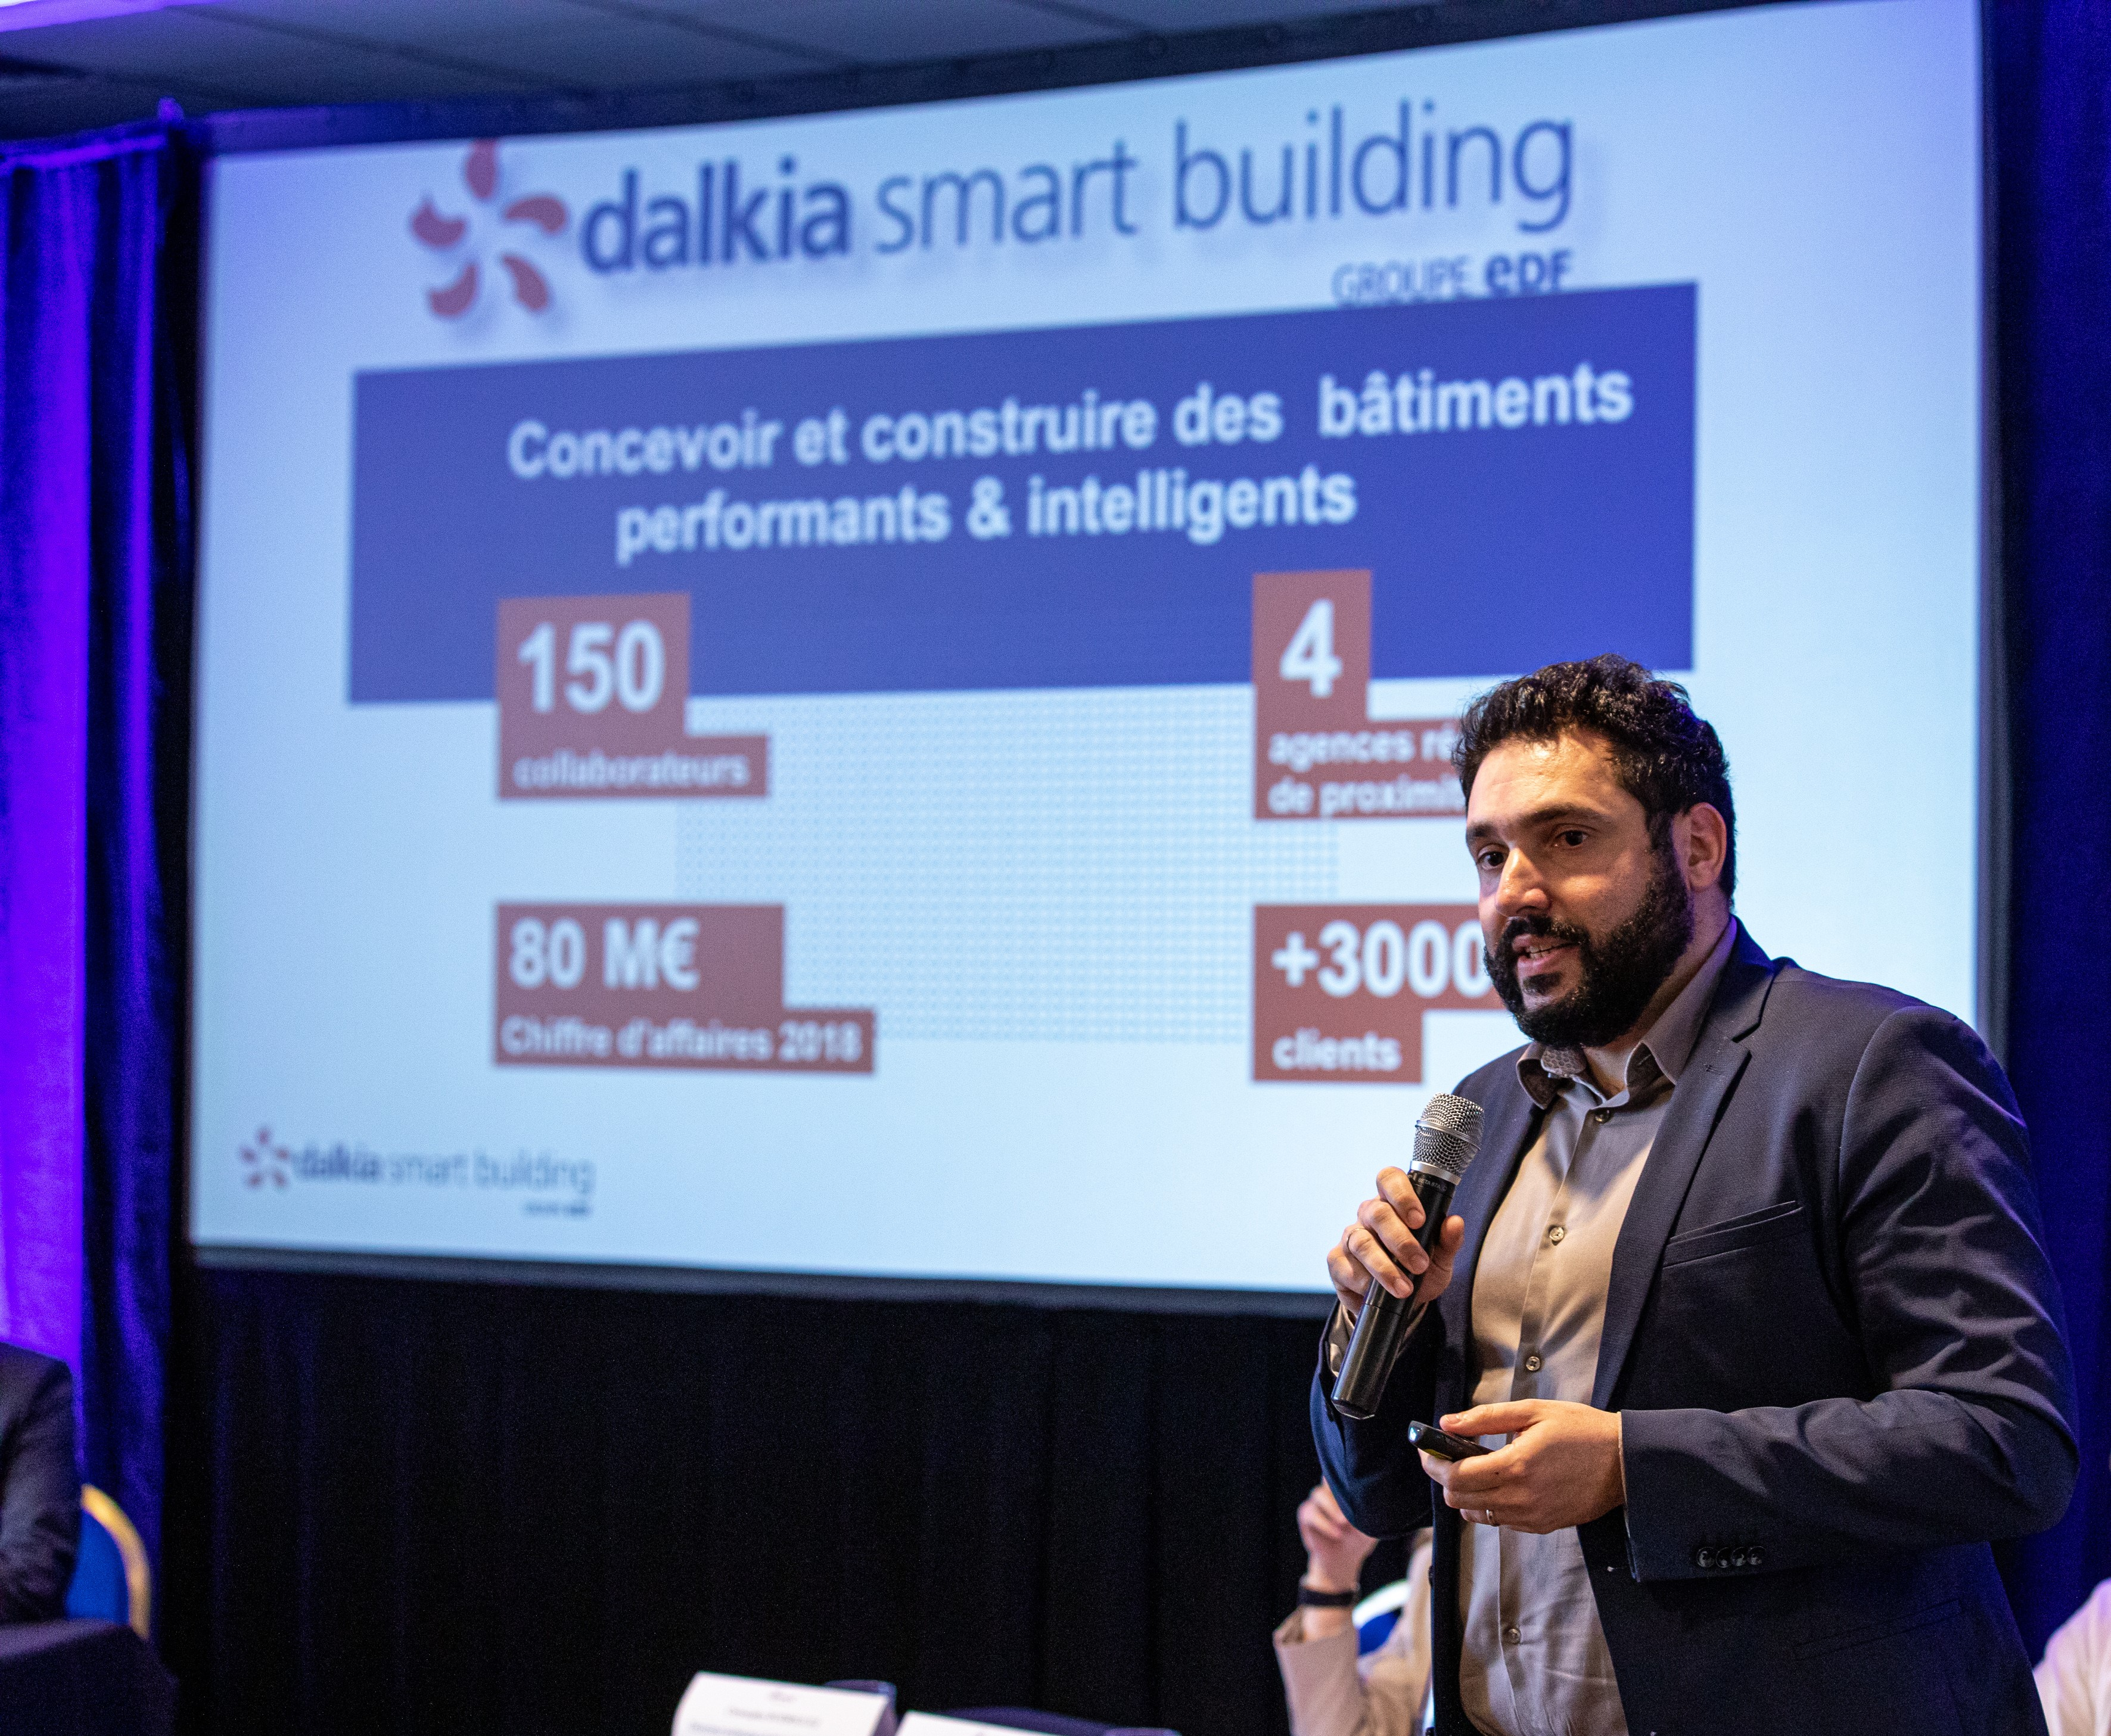 Interview With Dalkia Smart Building's Technical And Innovation Director